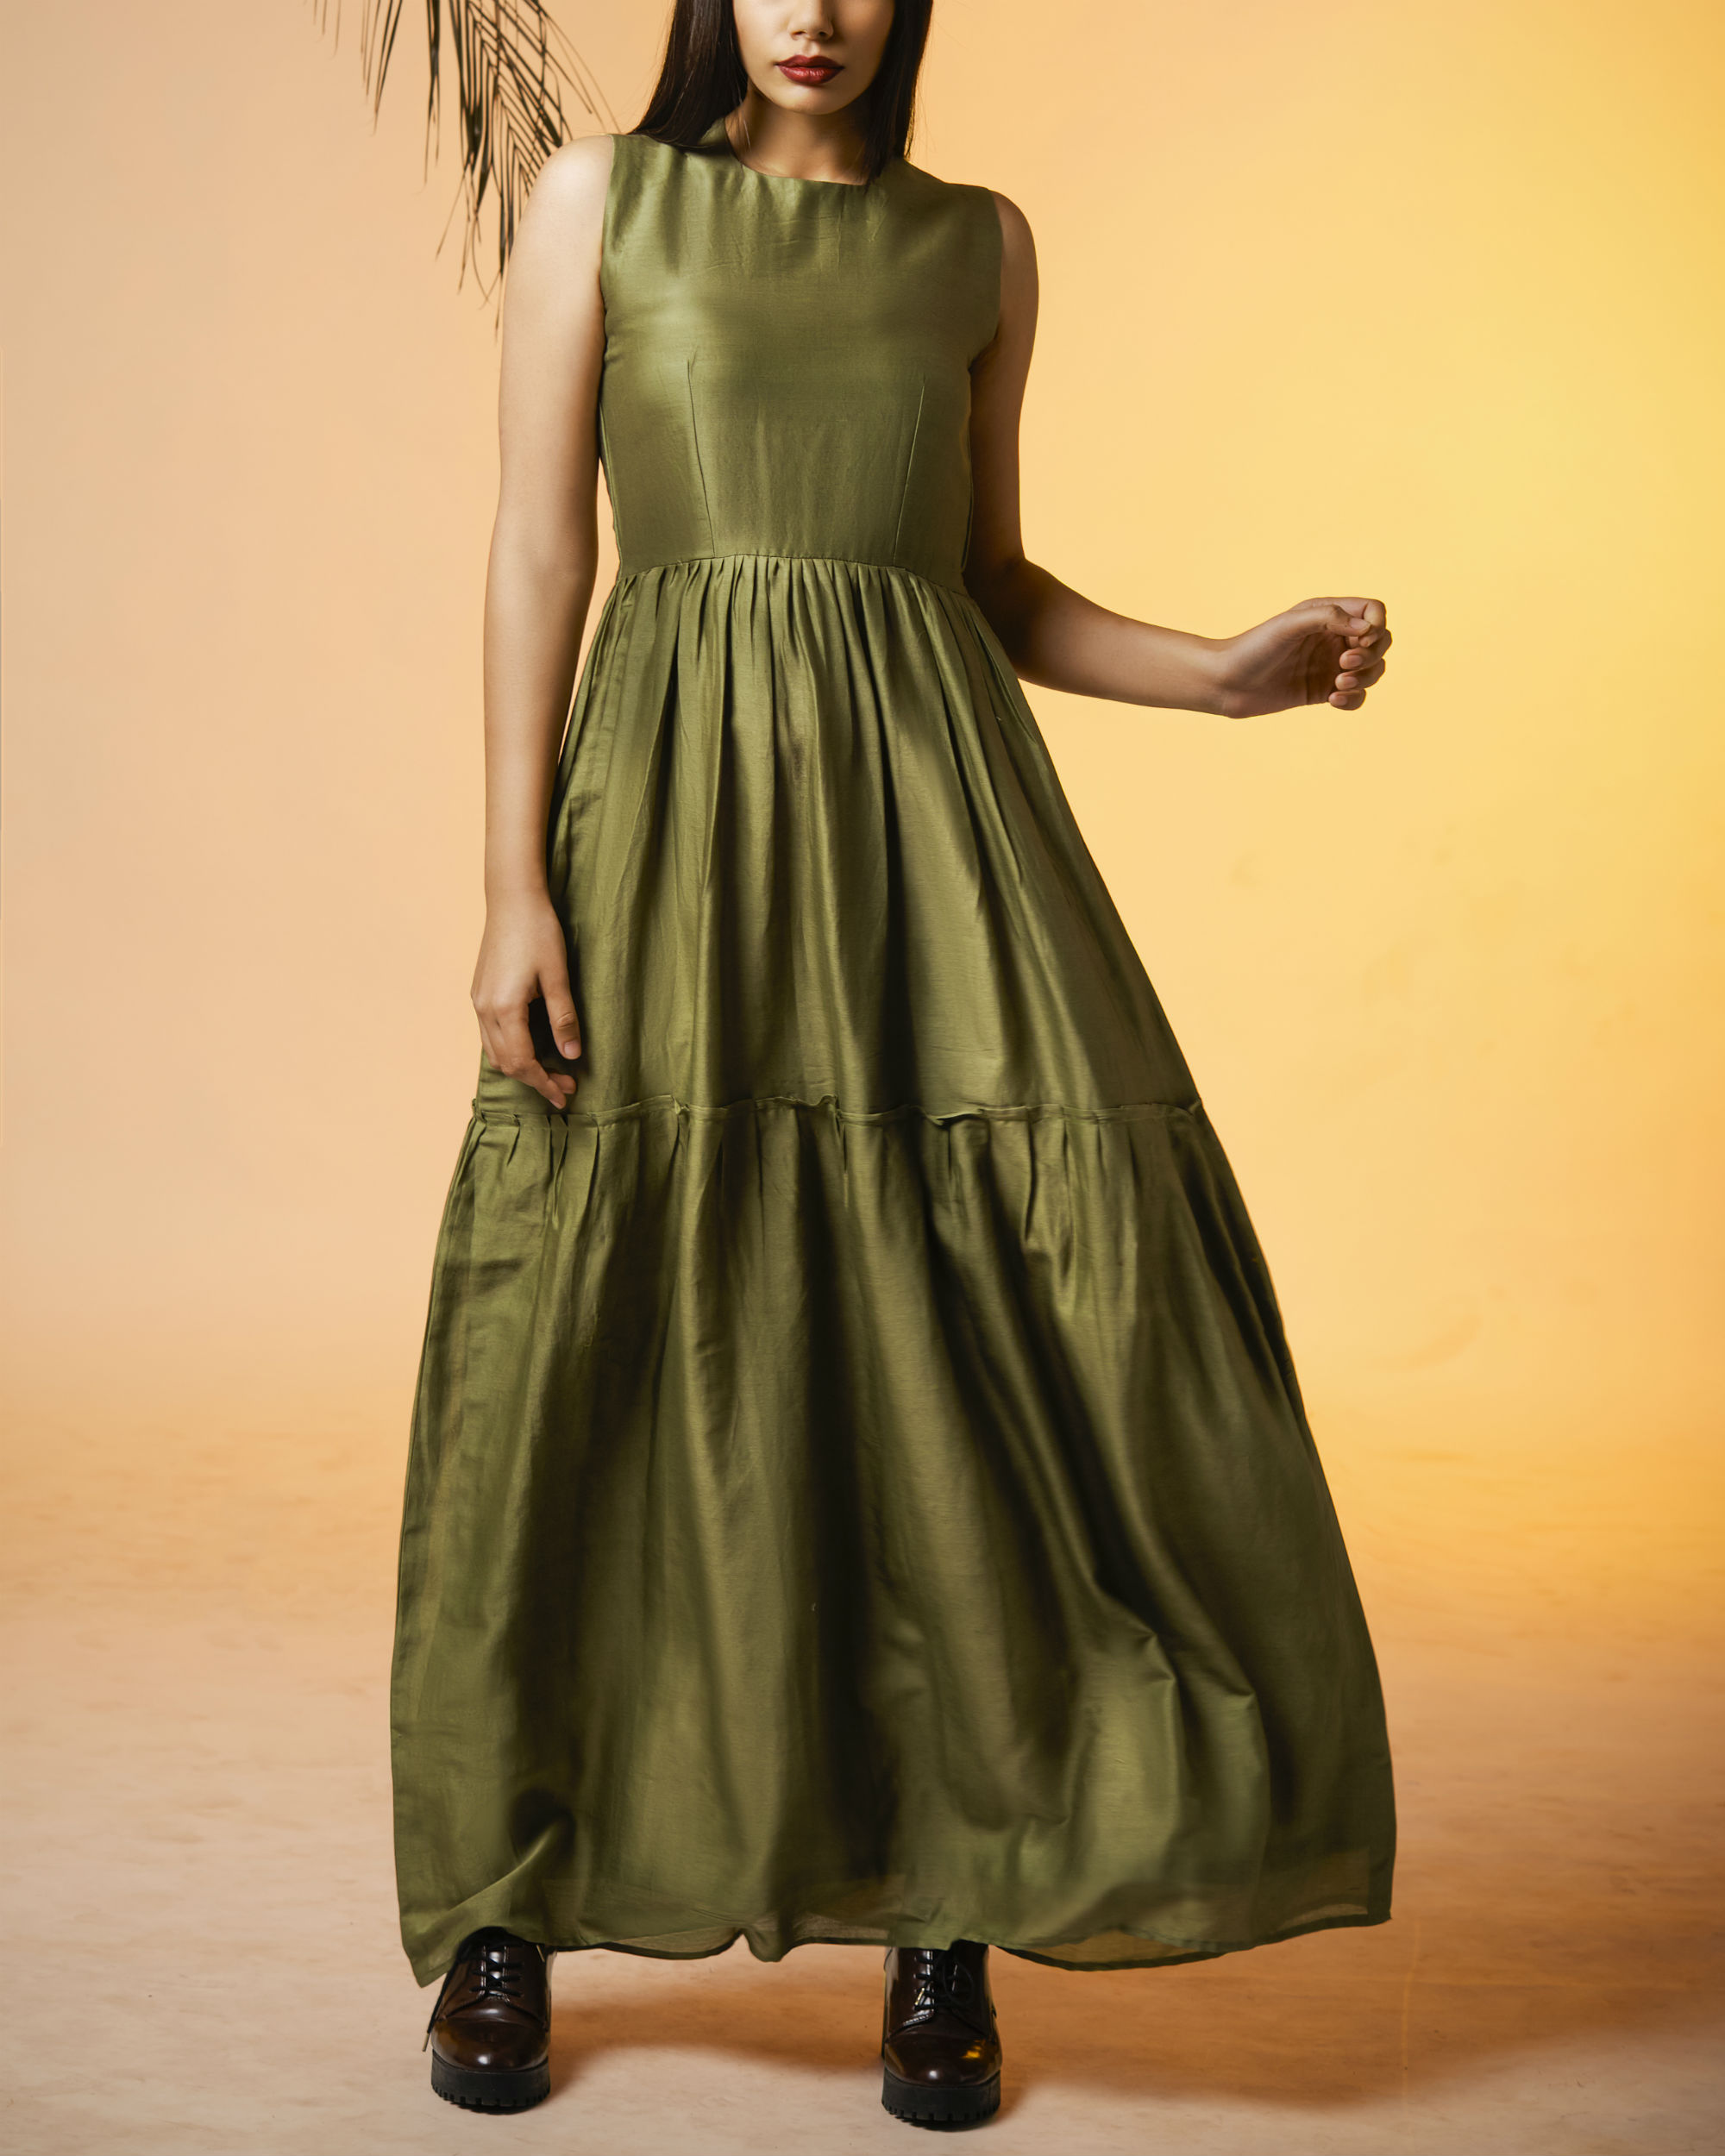 Olive back tasseled dress